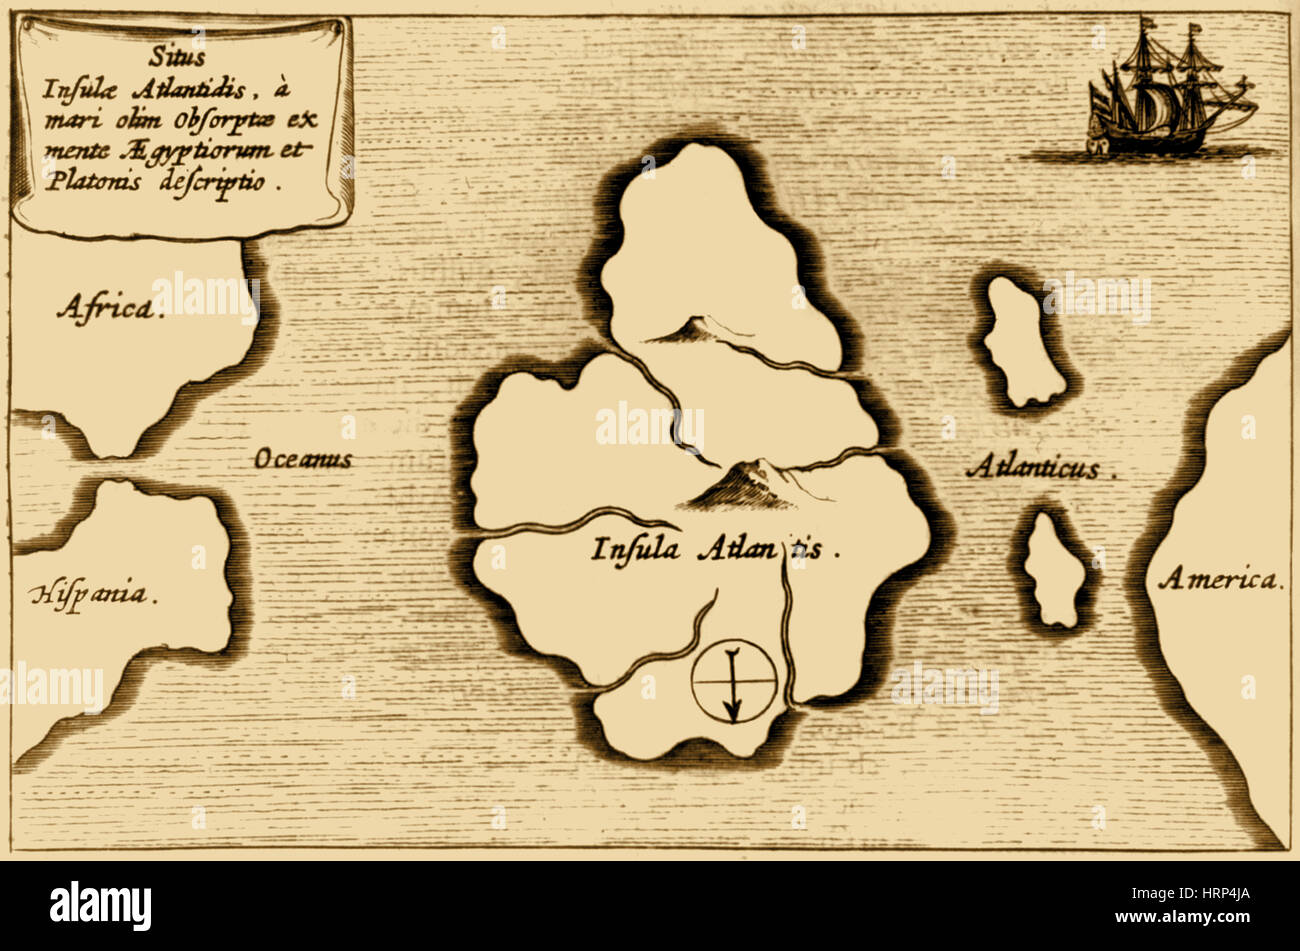 Lost Continent of Atlantis, 1665 - Stock Image